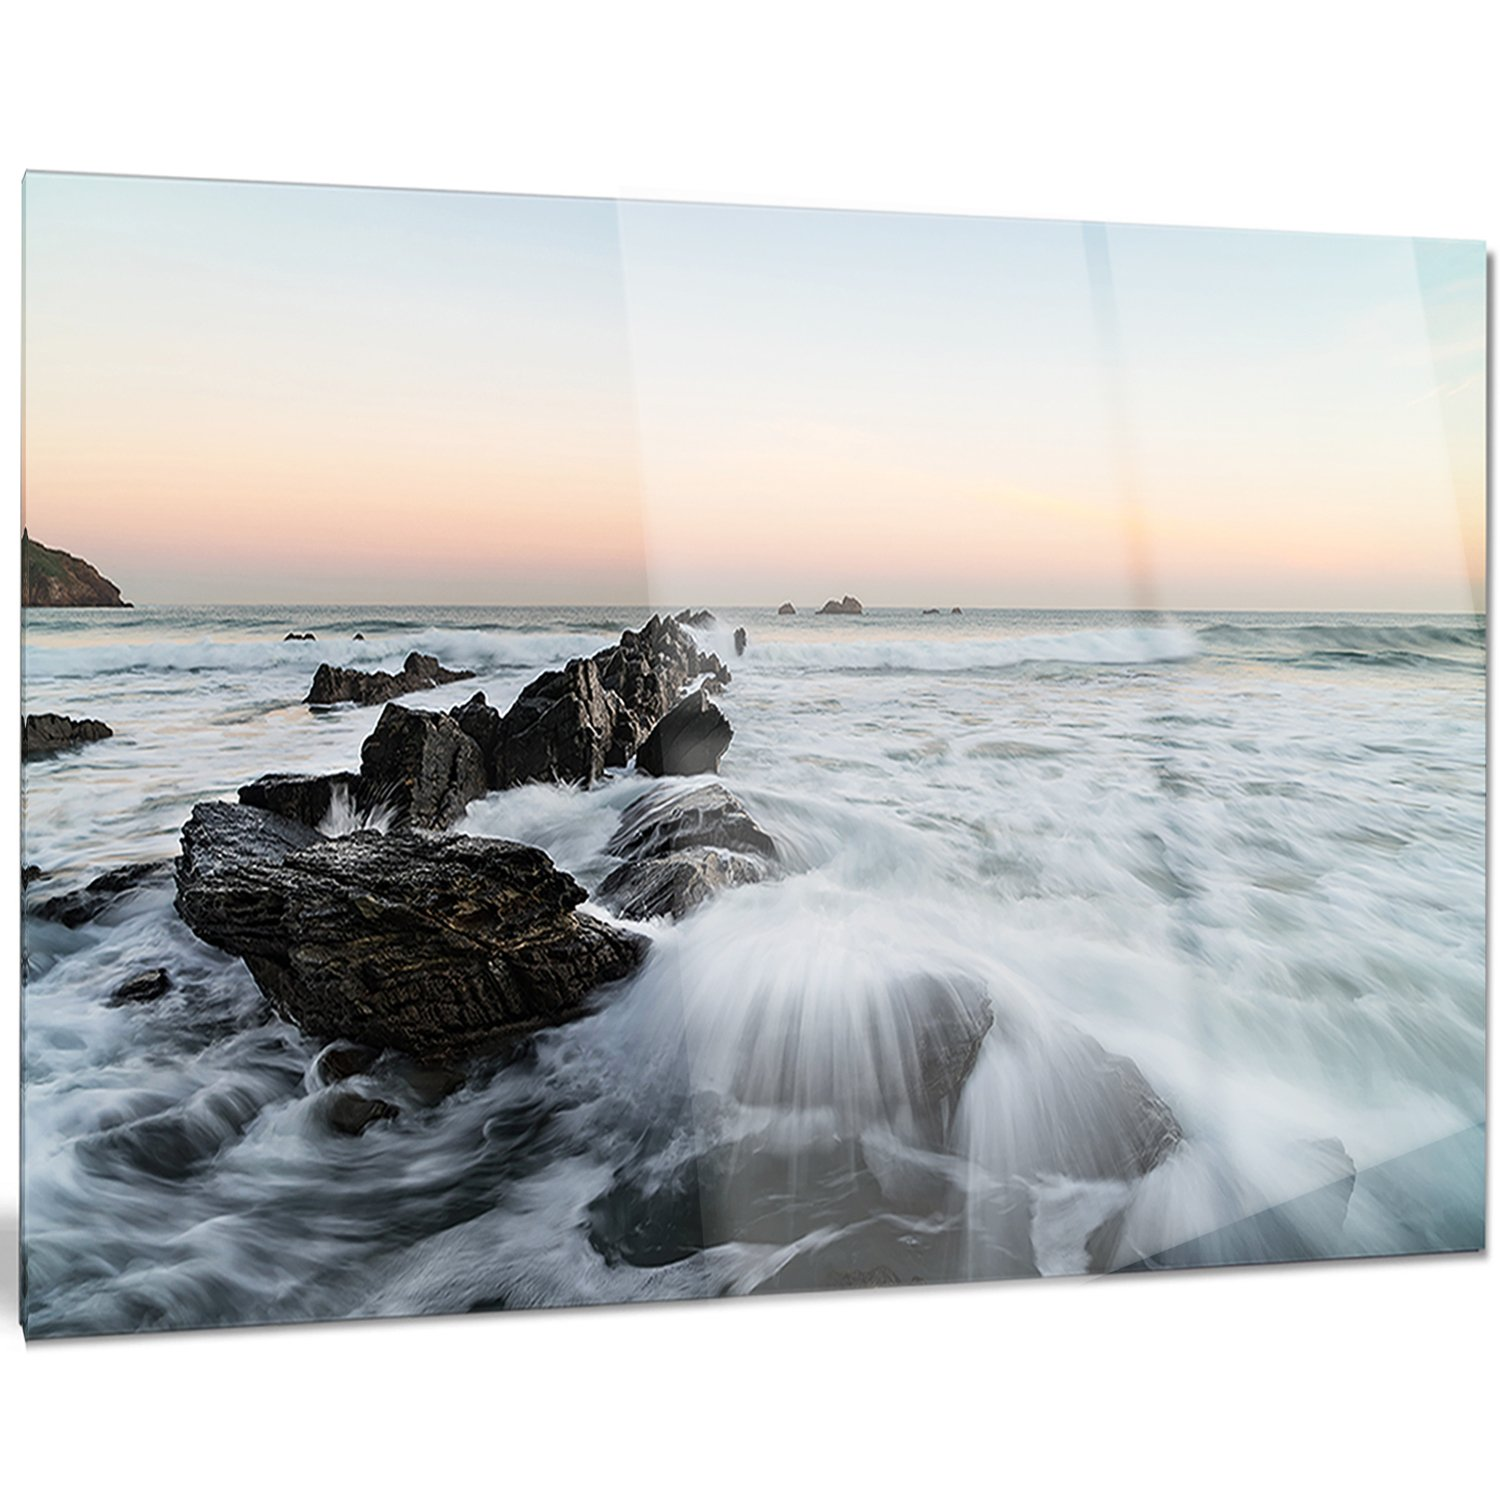 Designart MT10718-401 Bay of Biscay White Waves Hitting Beach Contemporary Seascape Glossy Metal Wall Art,Blue,60x28